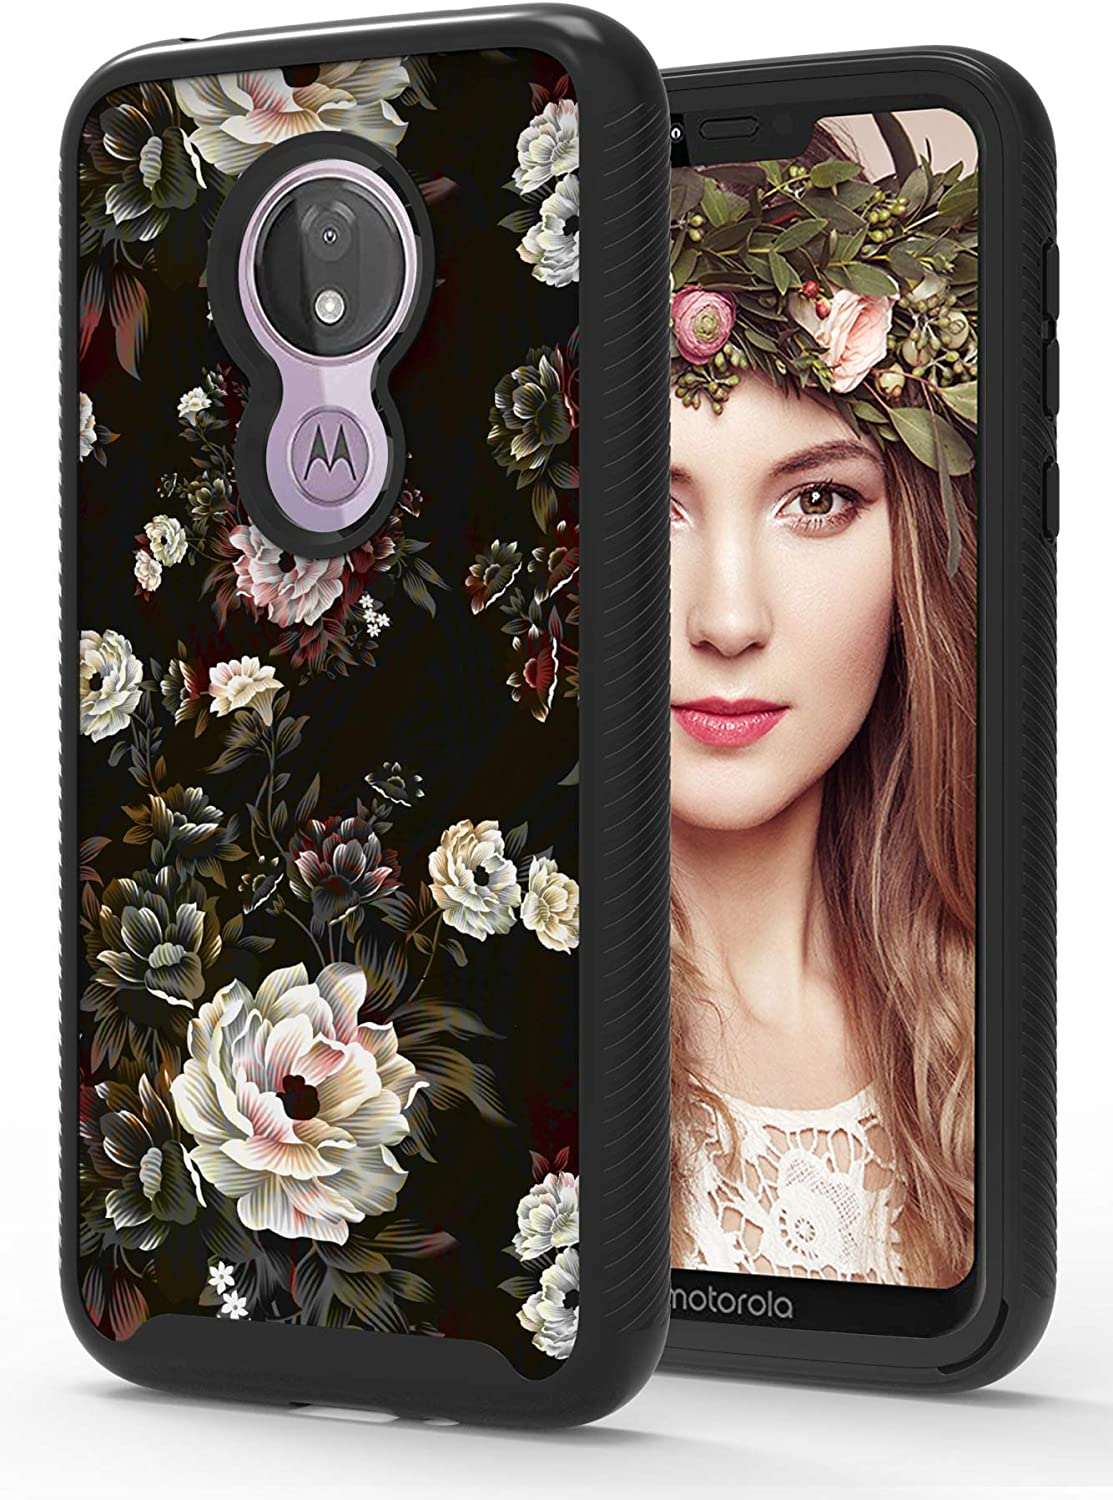 ShinyMax Moto G7 Power Case with Roses Design,Motorola G7 Supra Phone Case,Hybrid Triple Layer Armor Protective Cover Flexible Sturdy Anti-Scratch Shockproof Case for Women and Girls -Black/Flowers